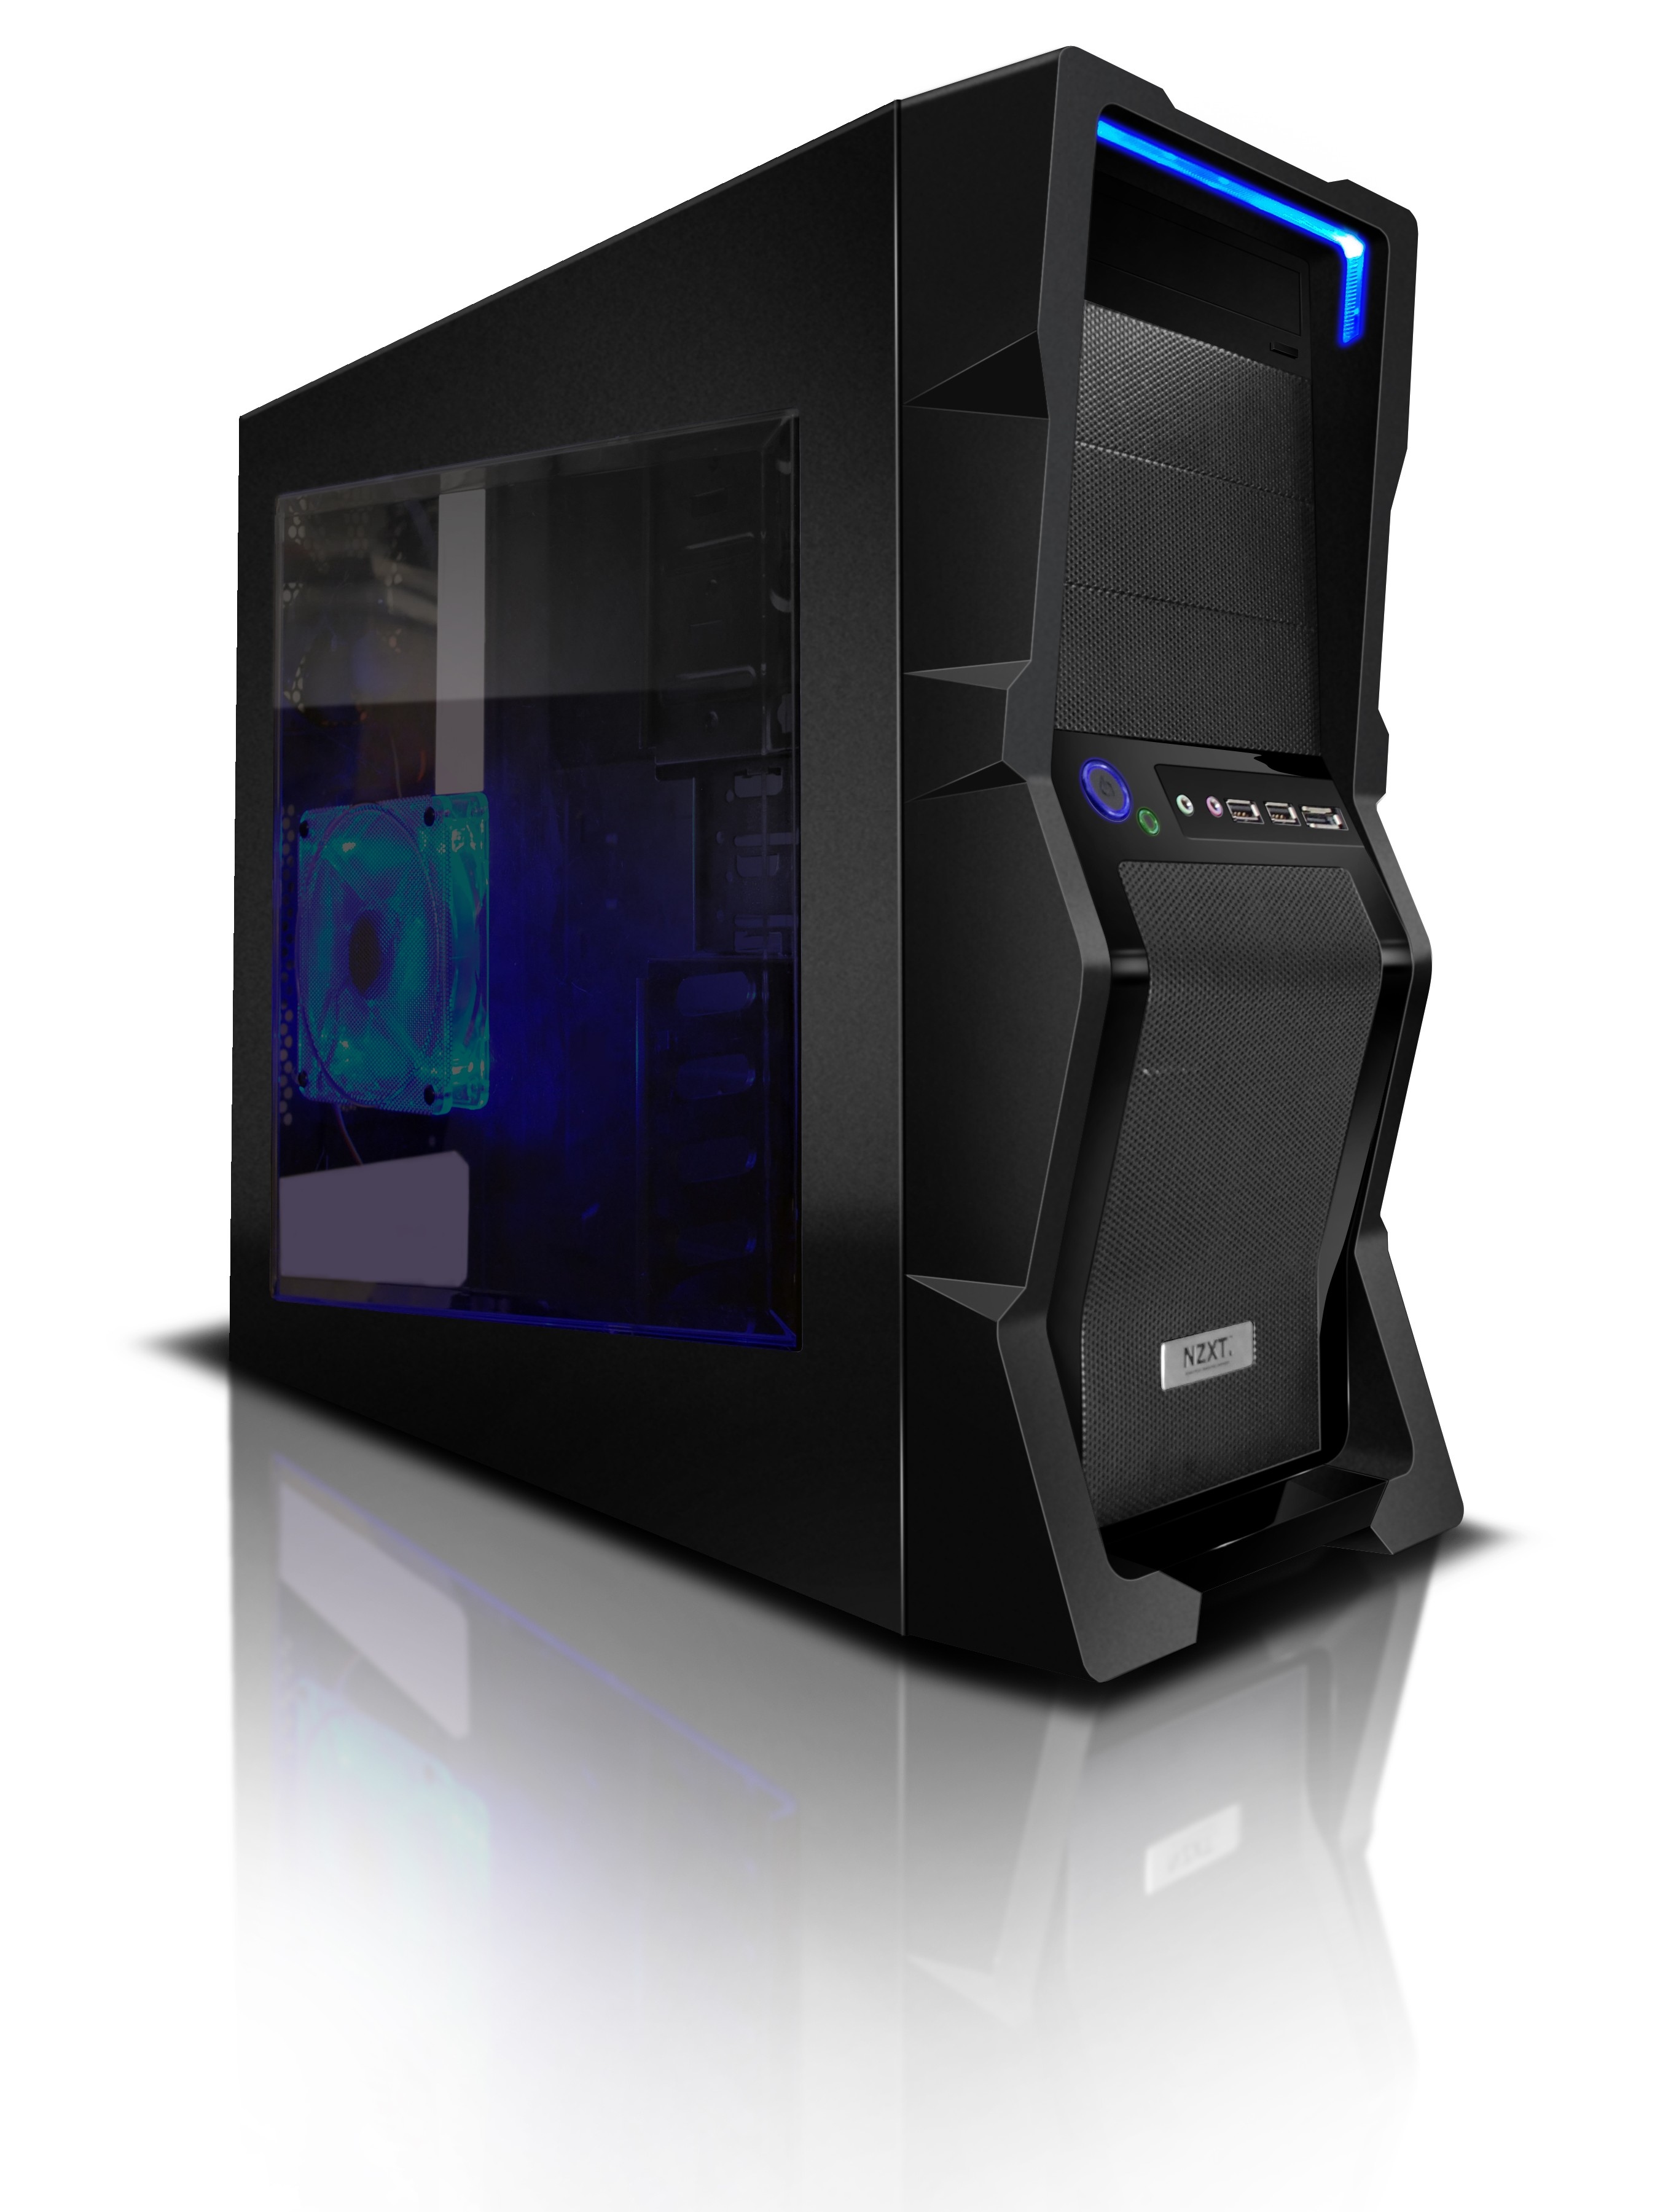 NZXT M59 gaming chassis announced